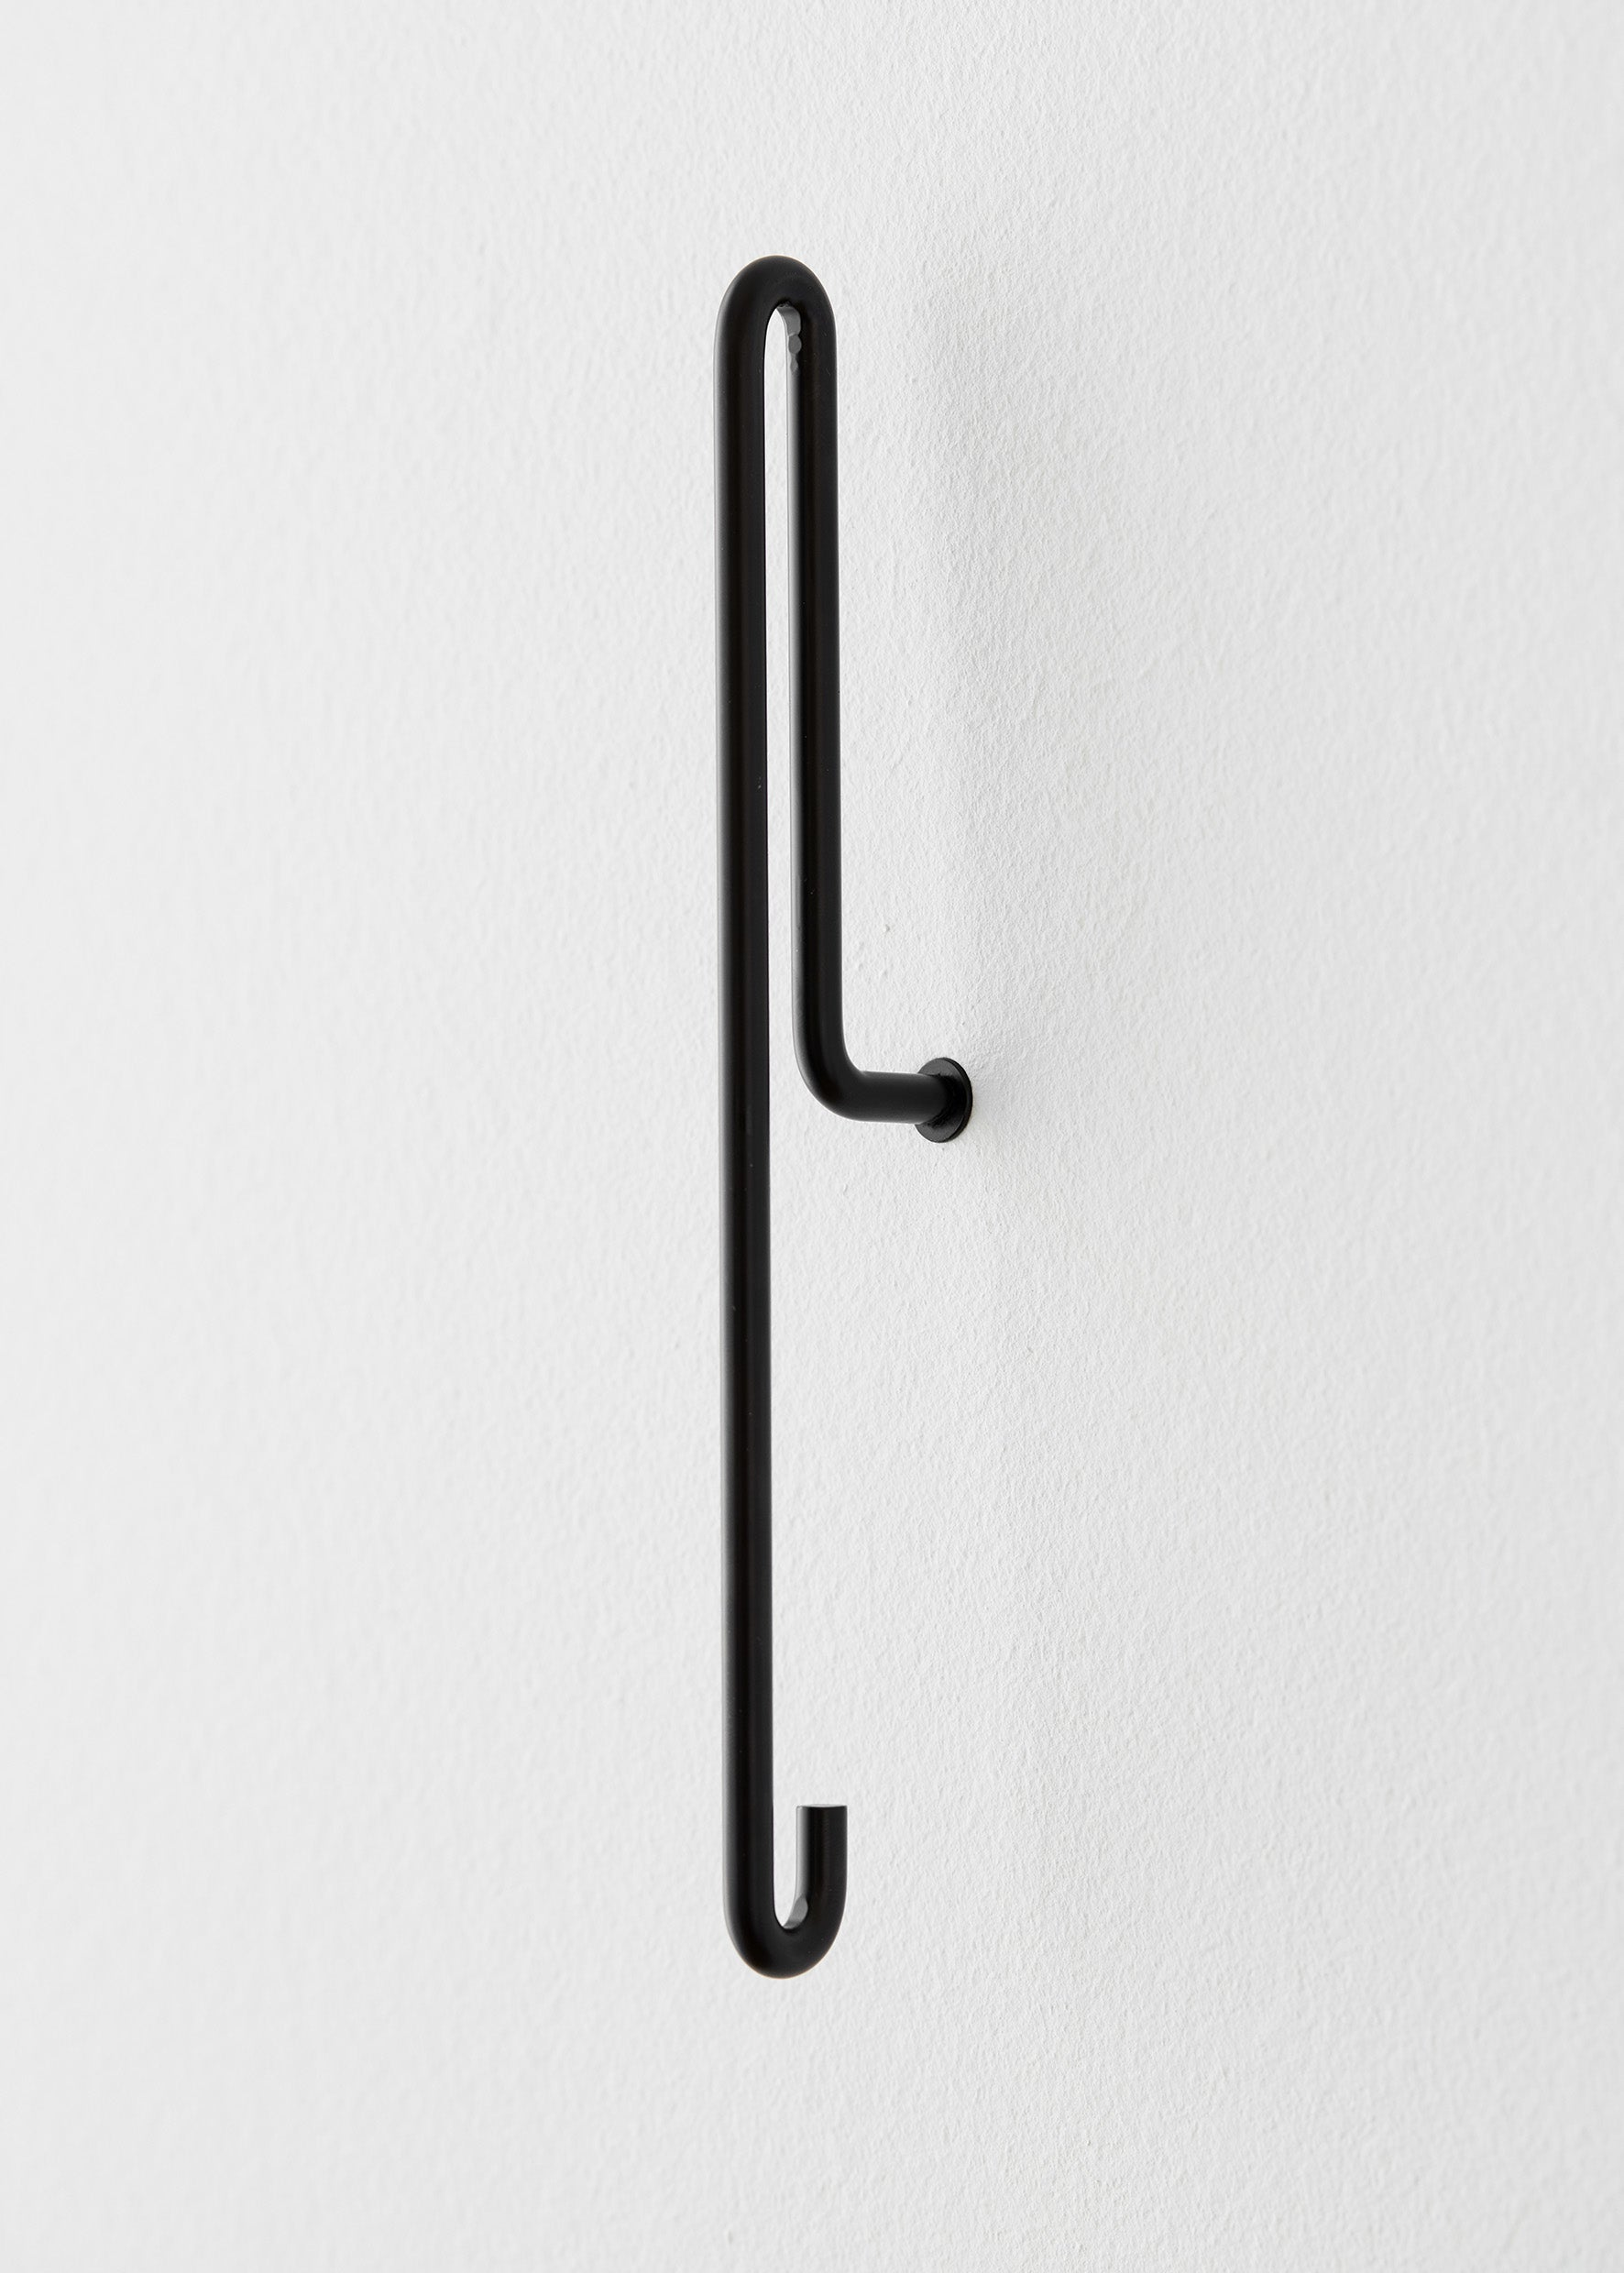 WALLHOOK - Large